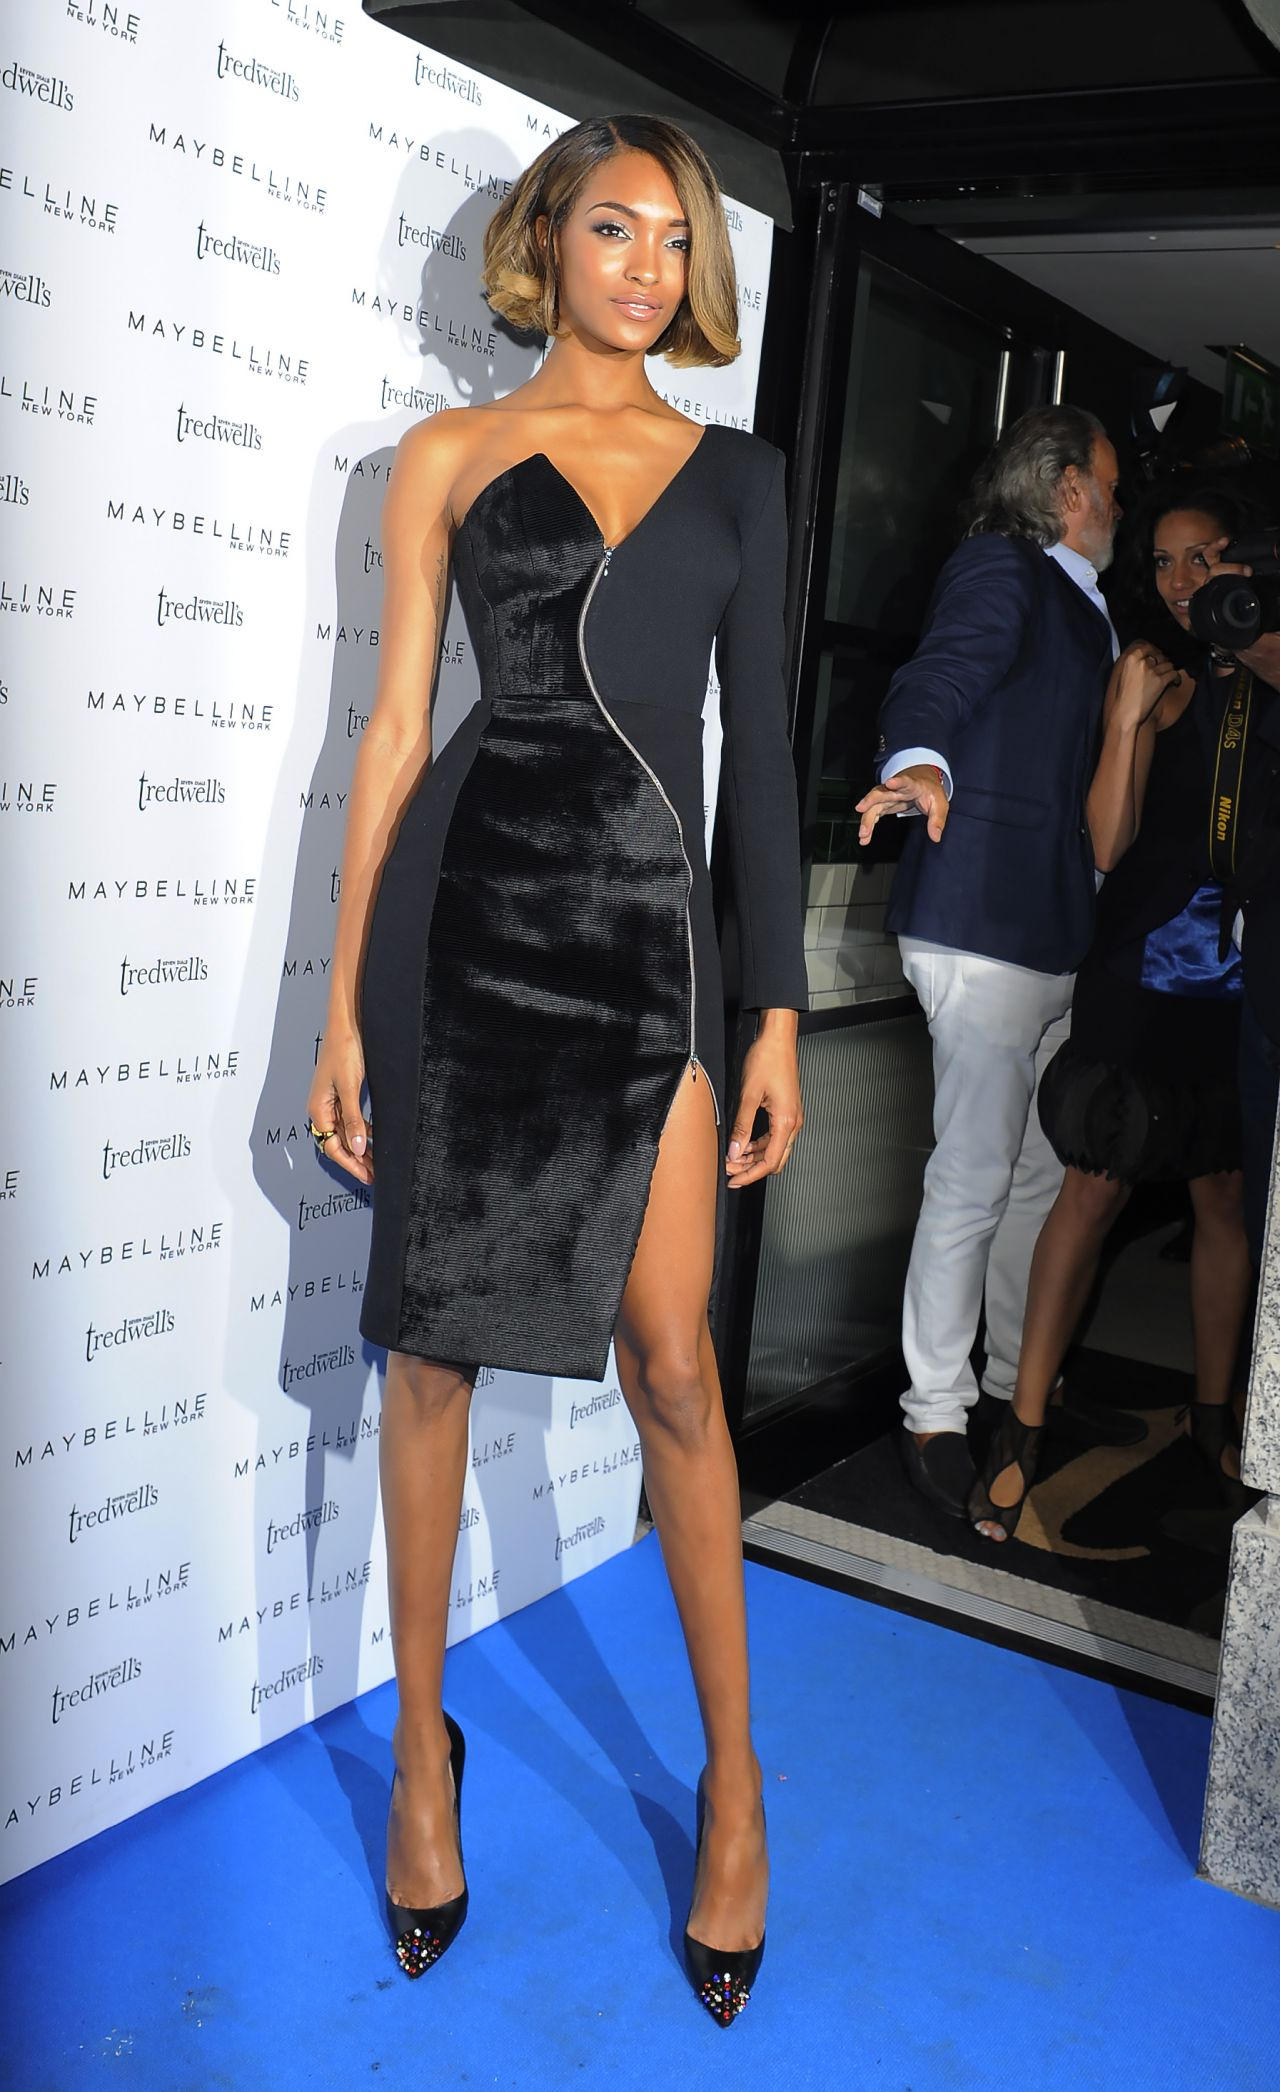 Jourdan Dunn - Hosts the London Fashion Week Maybelline Party - September 2014